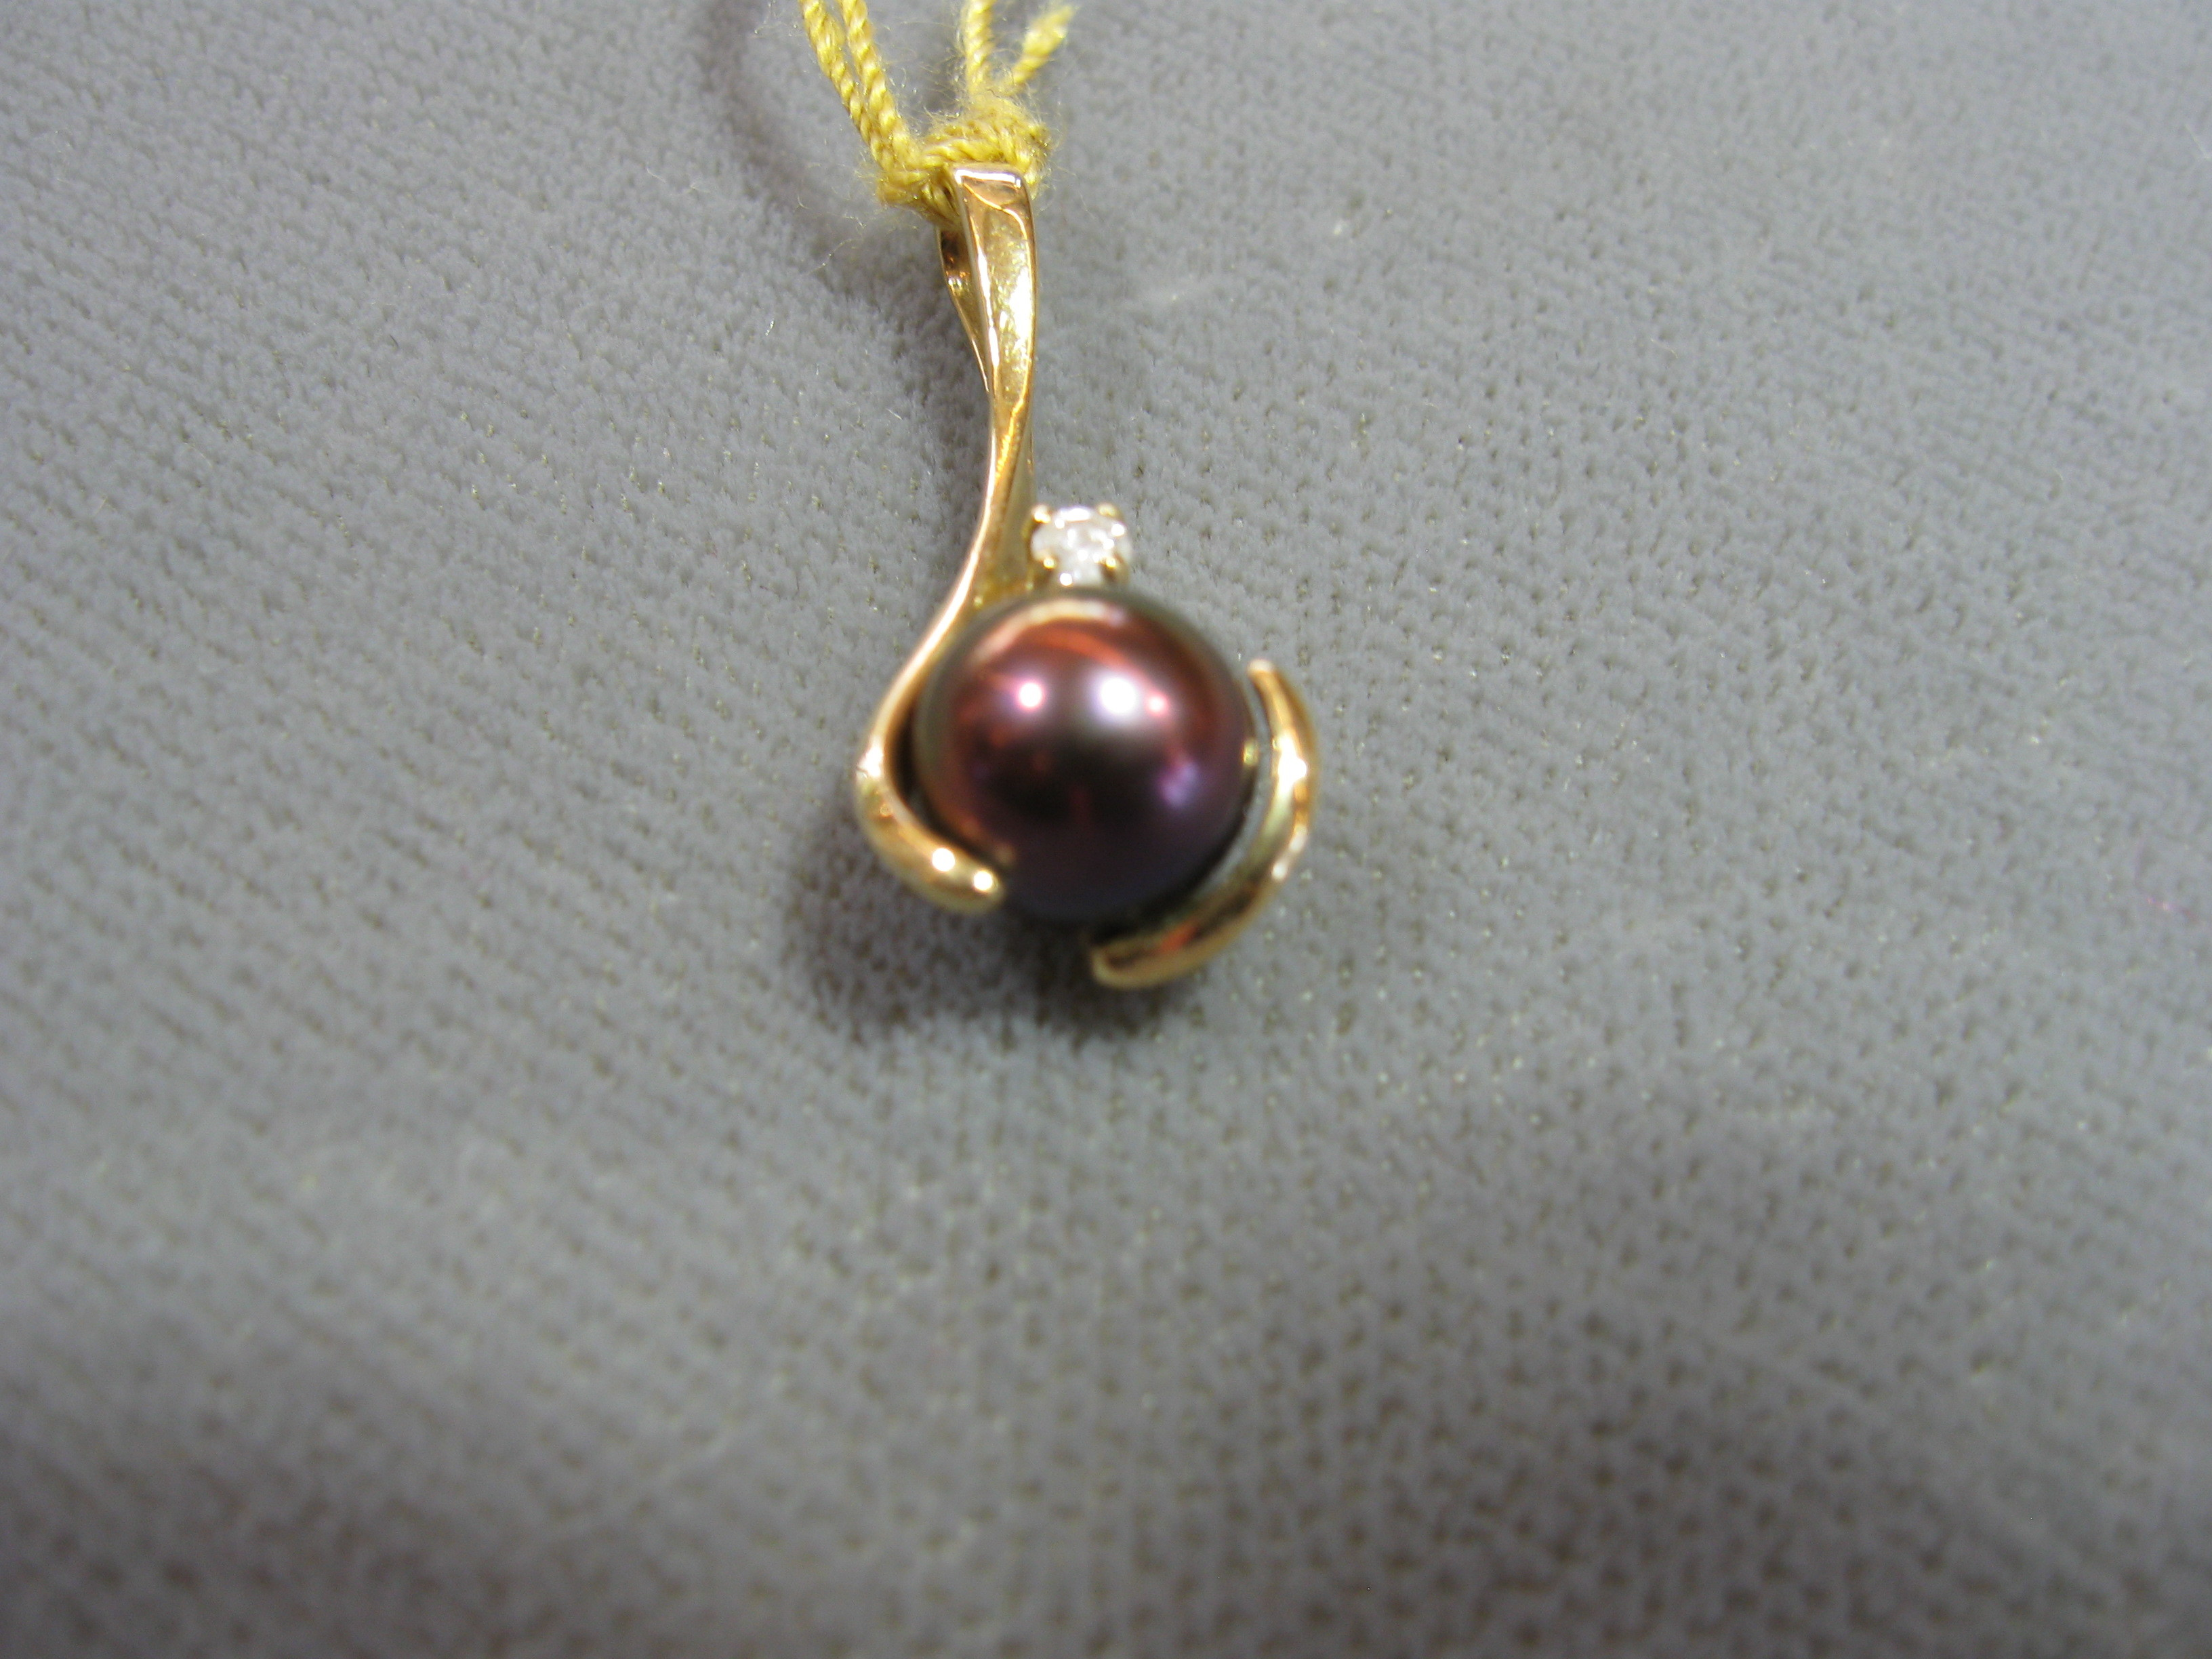 6.8 mm Pearl and Round Cut Diamond Pendant Set in 14kt Yellow Gold